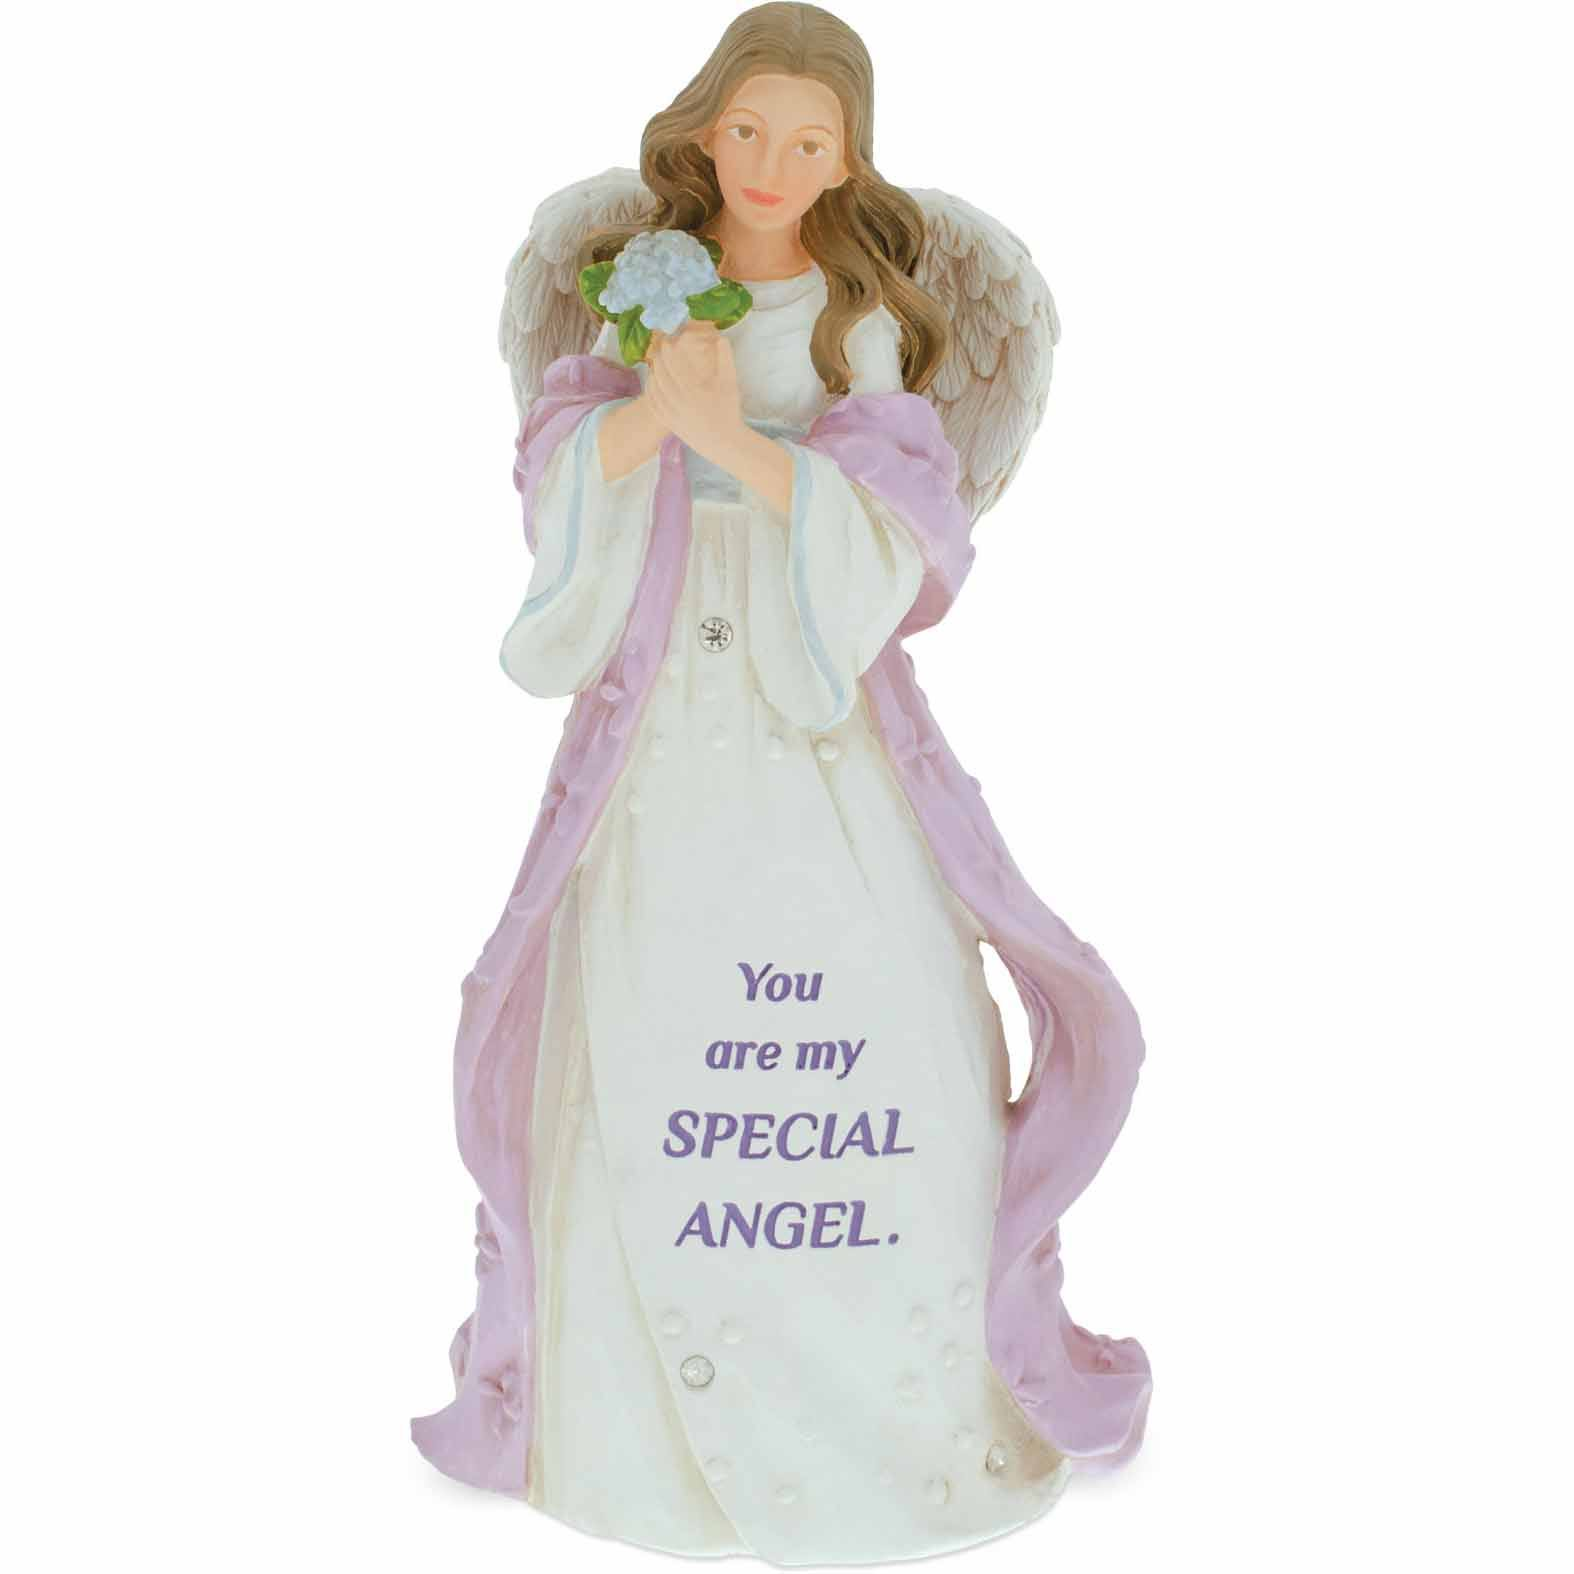 Angelstar Figurine-You Are My Special Angel, Multicolored